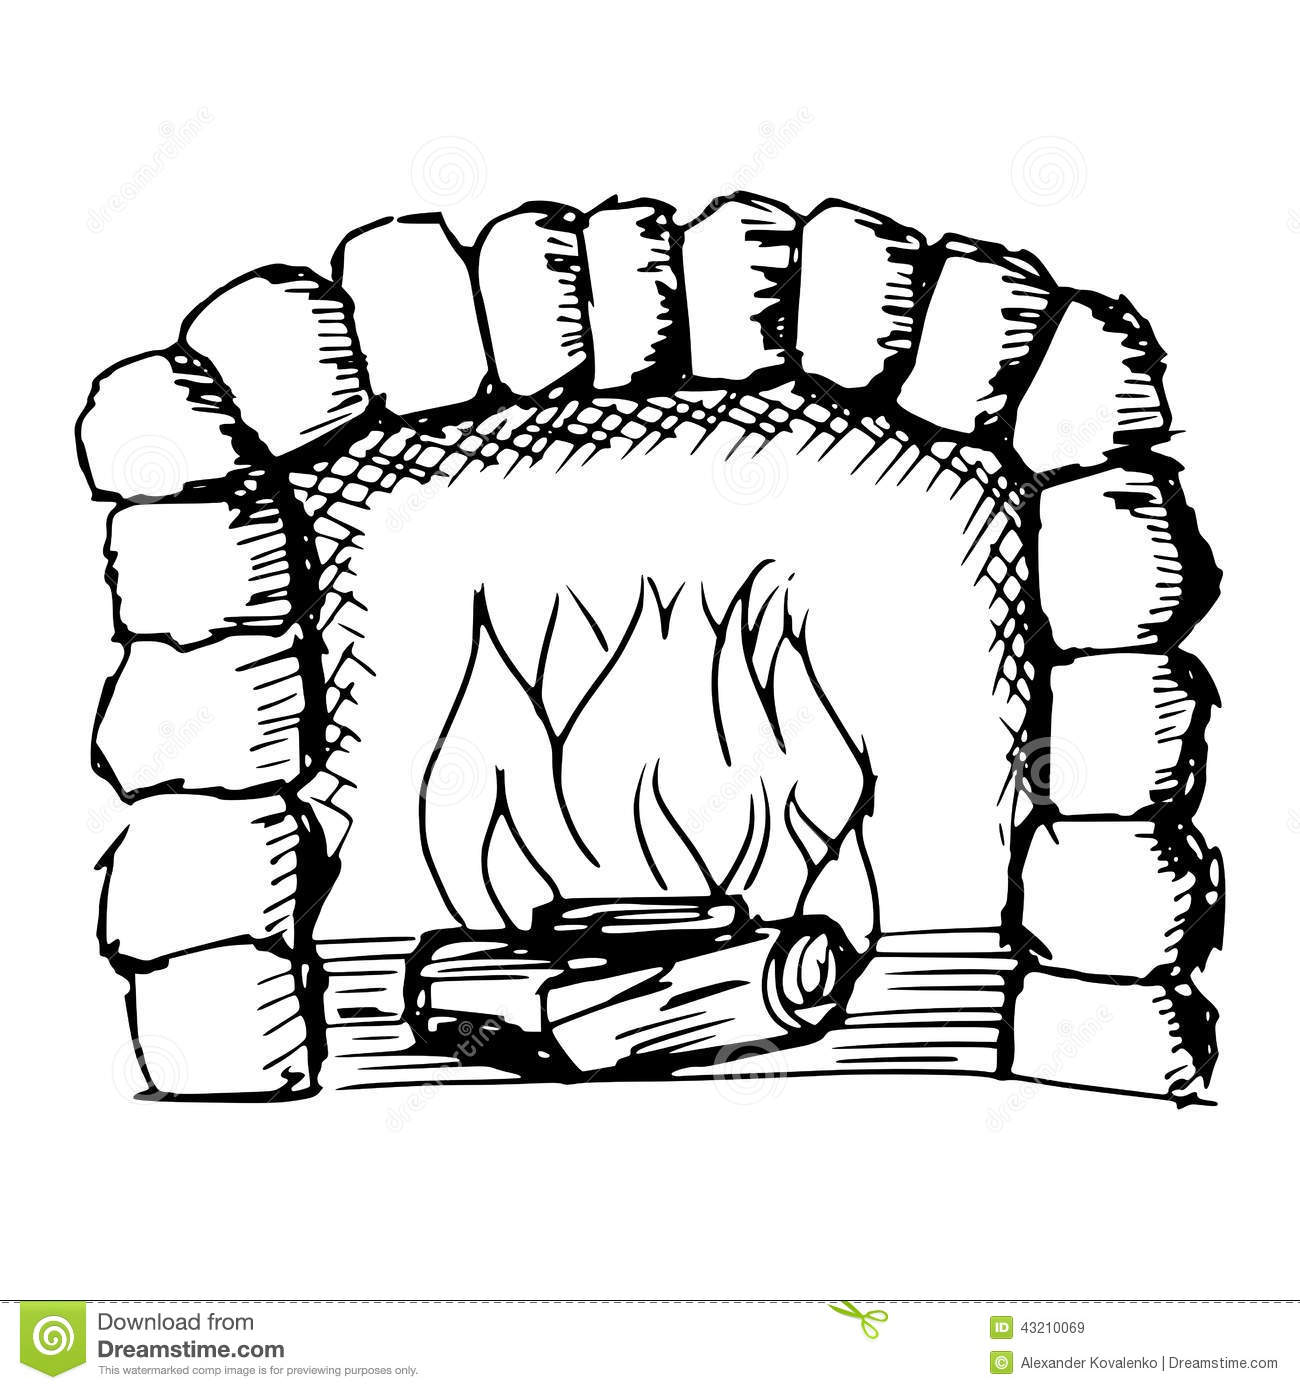 Phenomenal Fireplace Clipart Black And White 1 Clipart Station Home Interior And Landscaping Palasignezvosmurscom